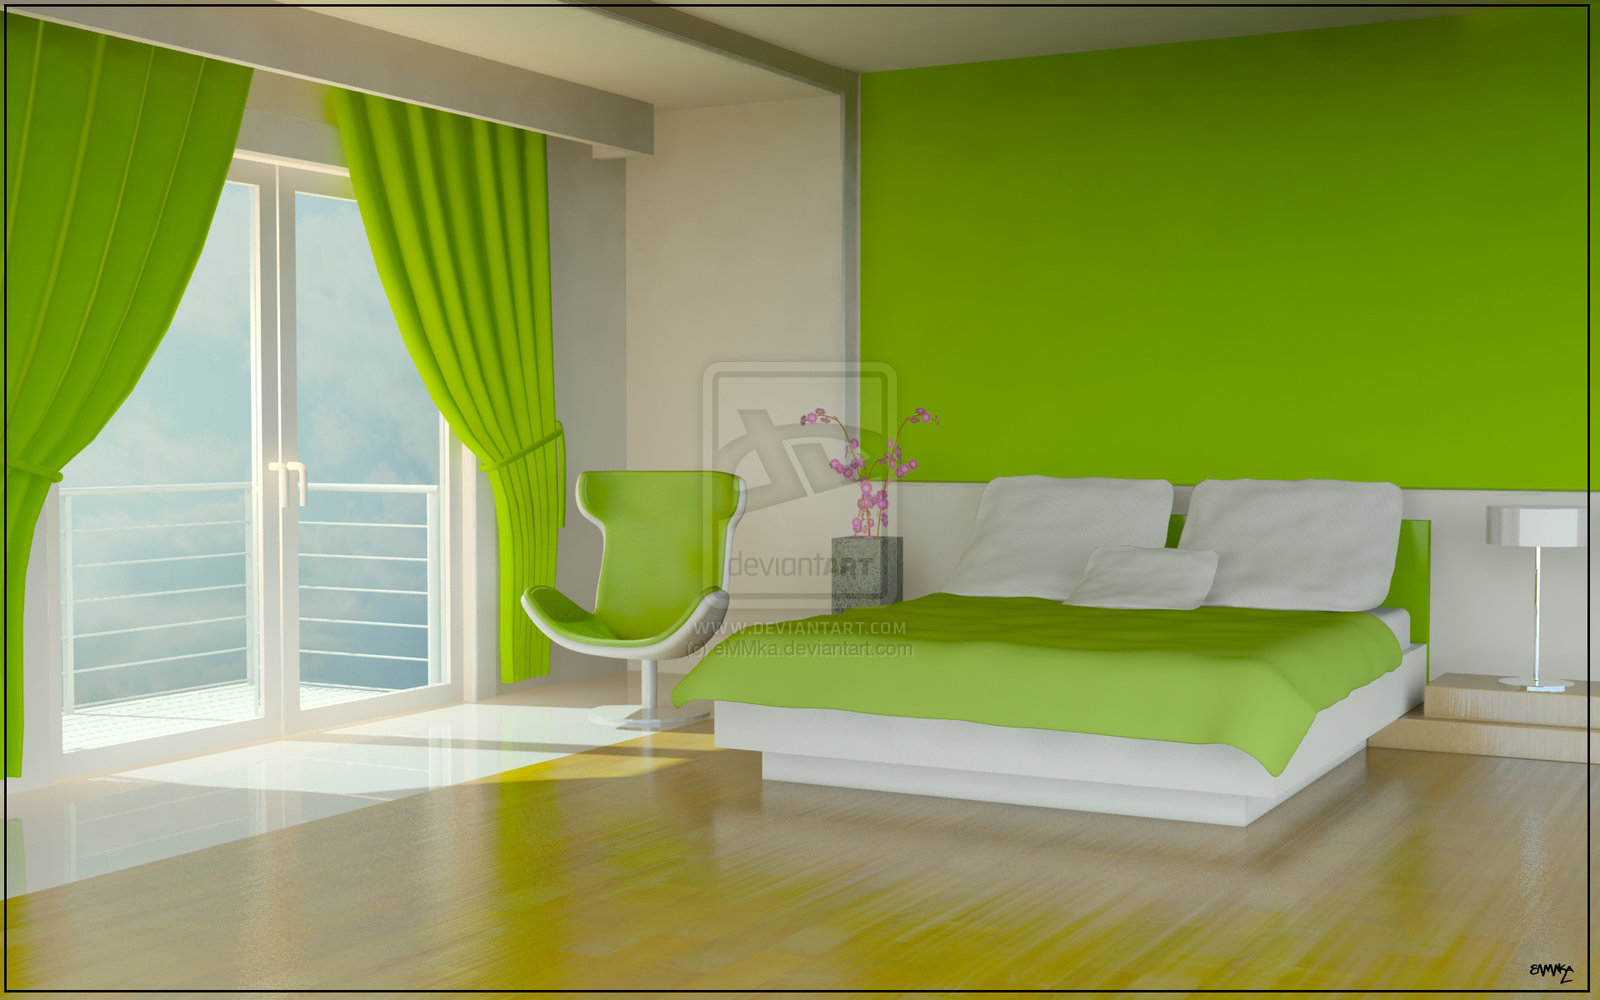 Bedroom colors and designs - A